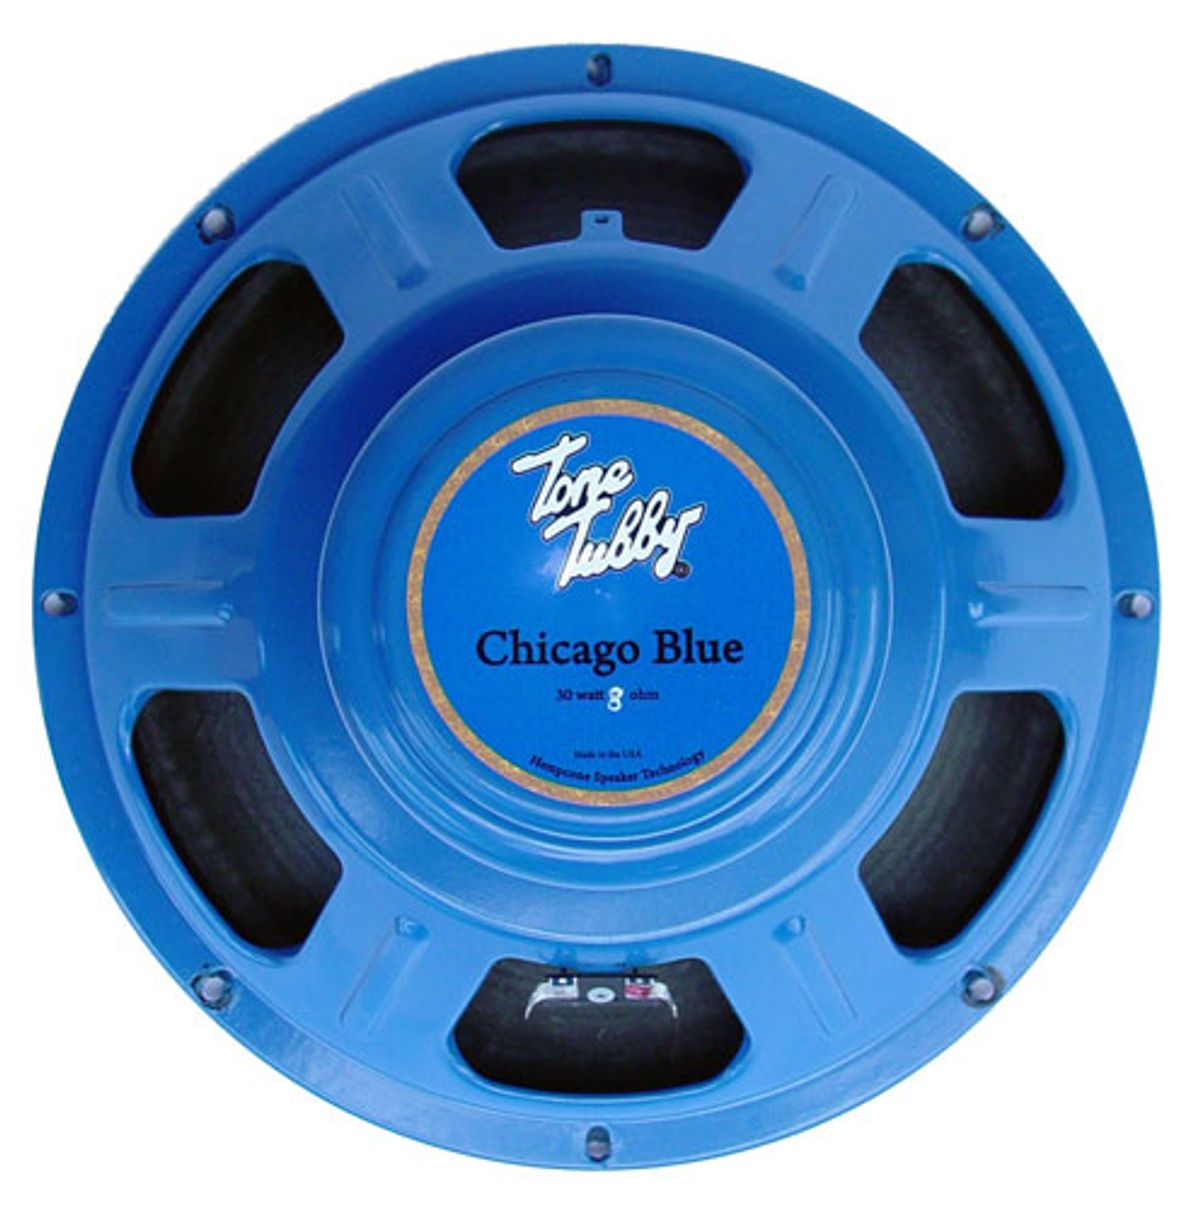 Tone Tubby Introduces the Chicago Blue Speaker